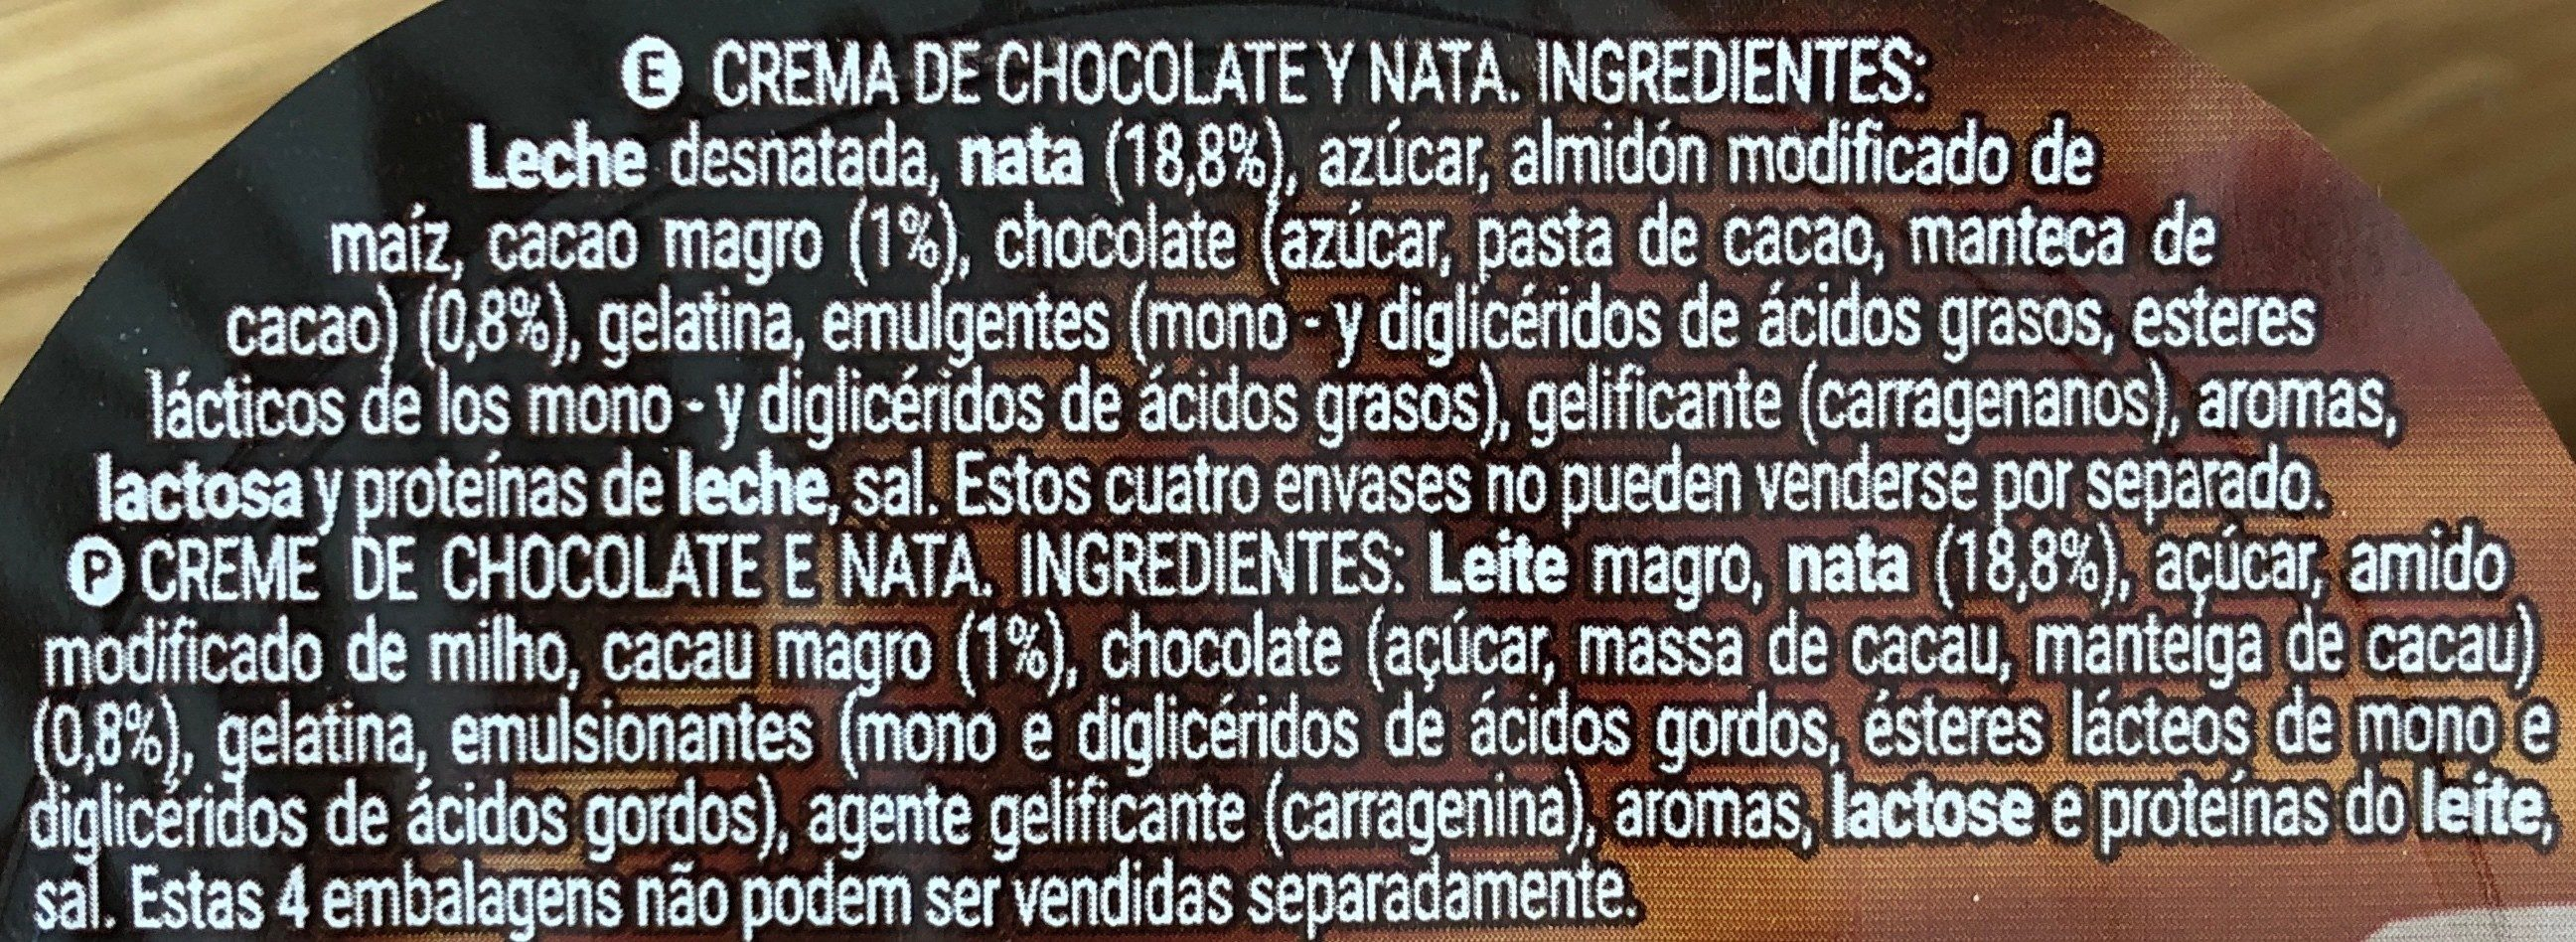 Chocolate Nata - Ingredientes